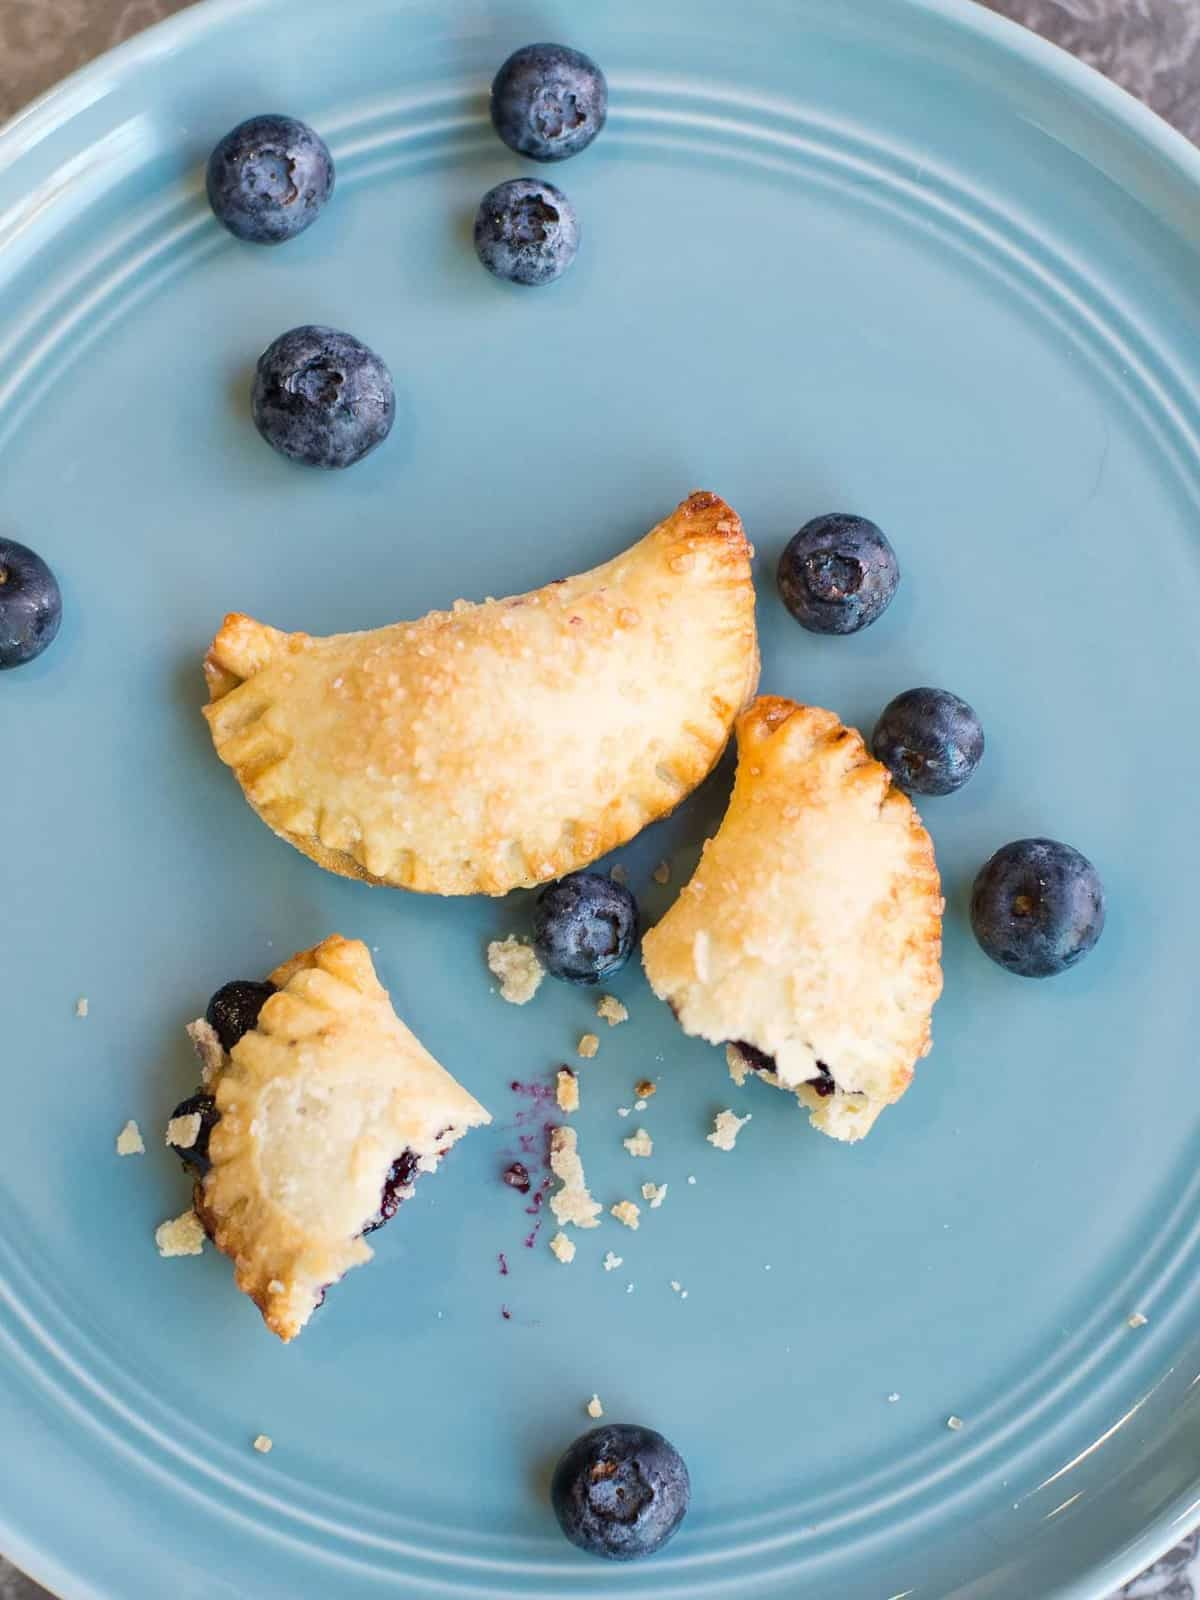 two blueberry hand pies on a plate with fresh blueberries. One is broken ope to show the blueberry pie filling.